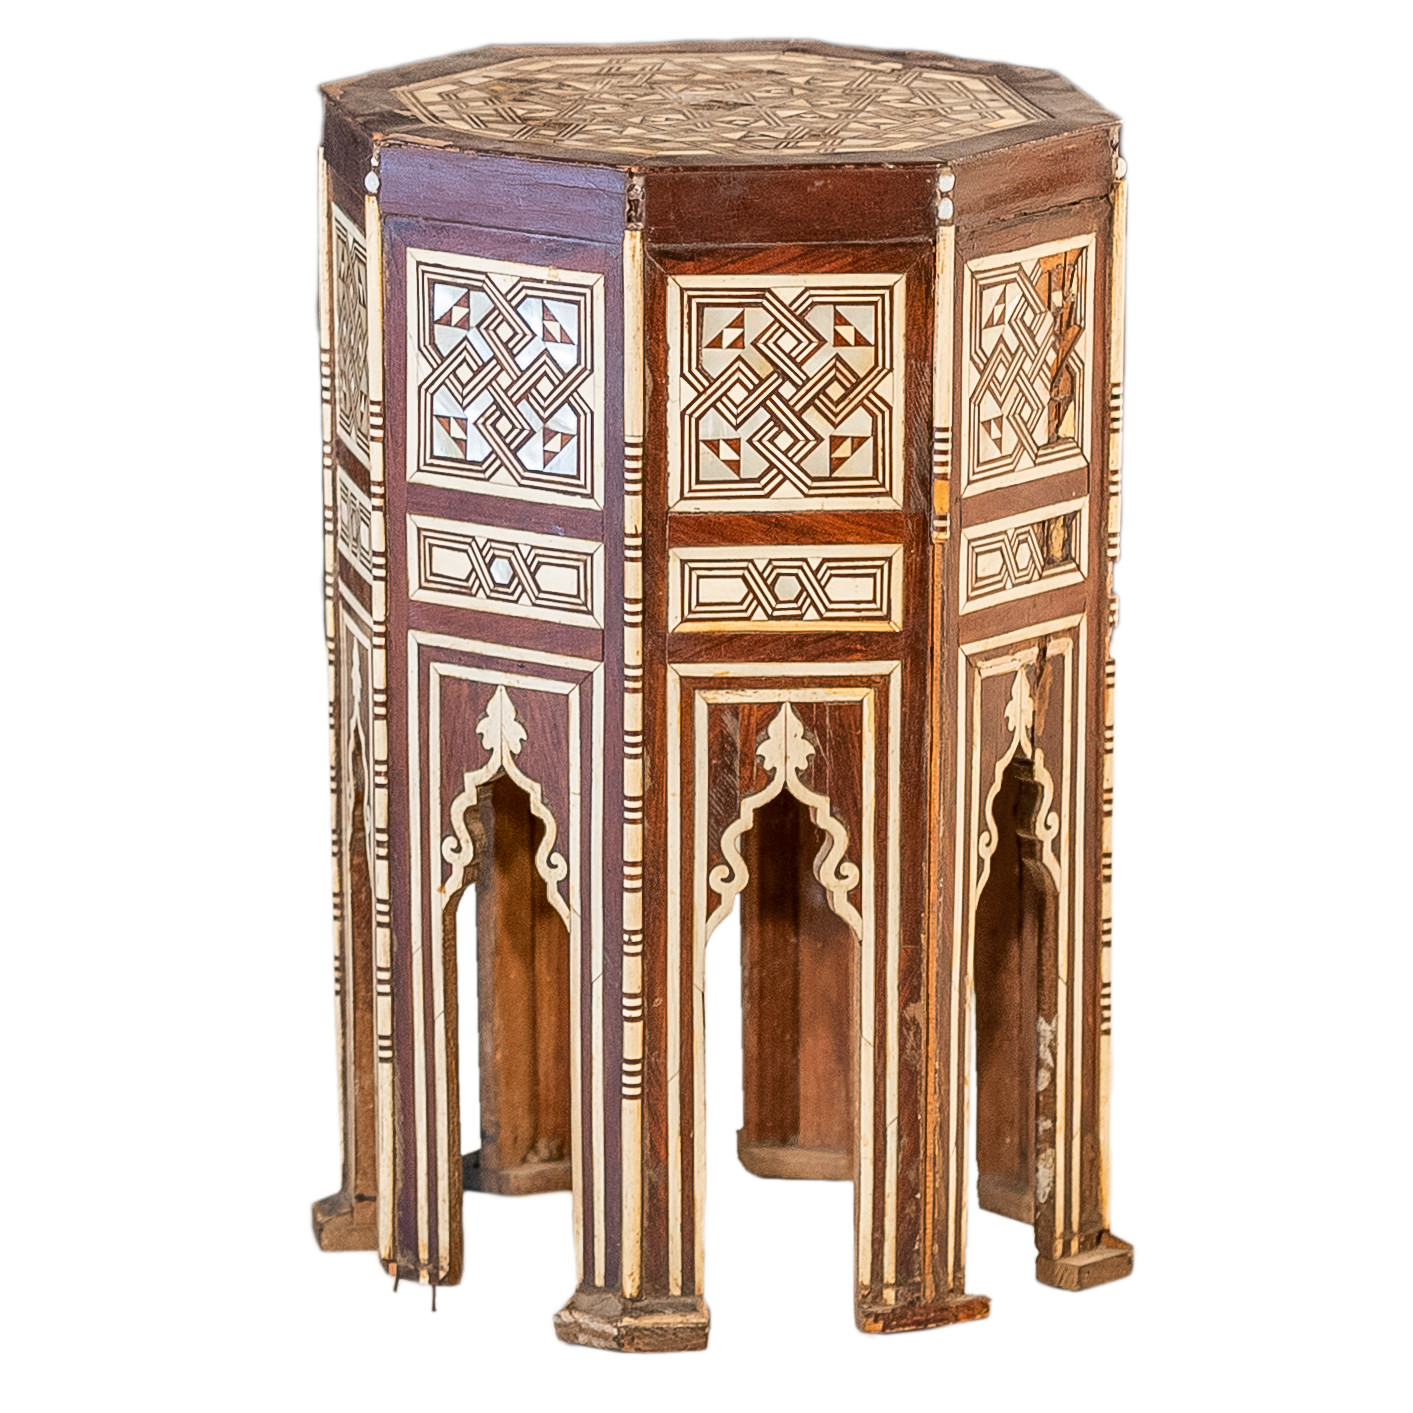 'Middle Eastern Bone and Mother of Pearl Inlaid Octagonal Tabouret Circa 1900 '